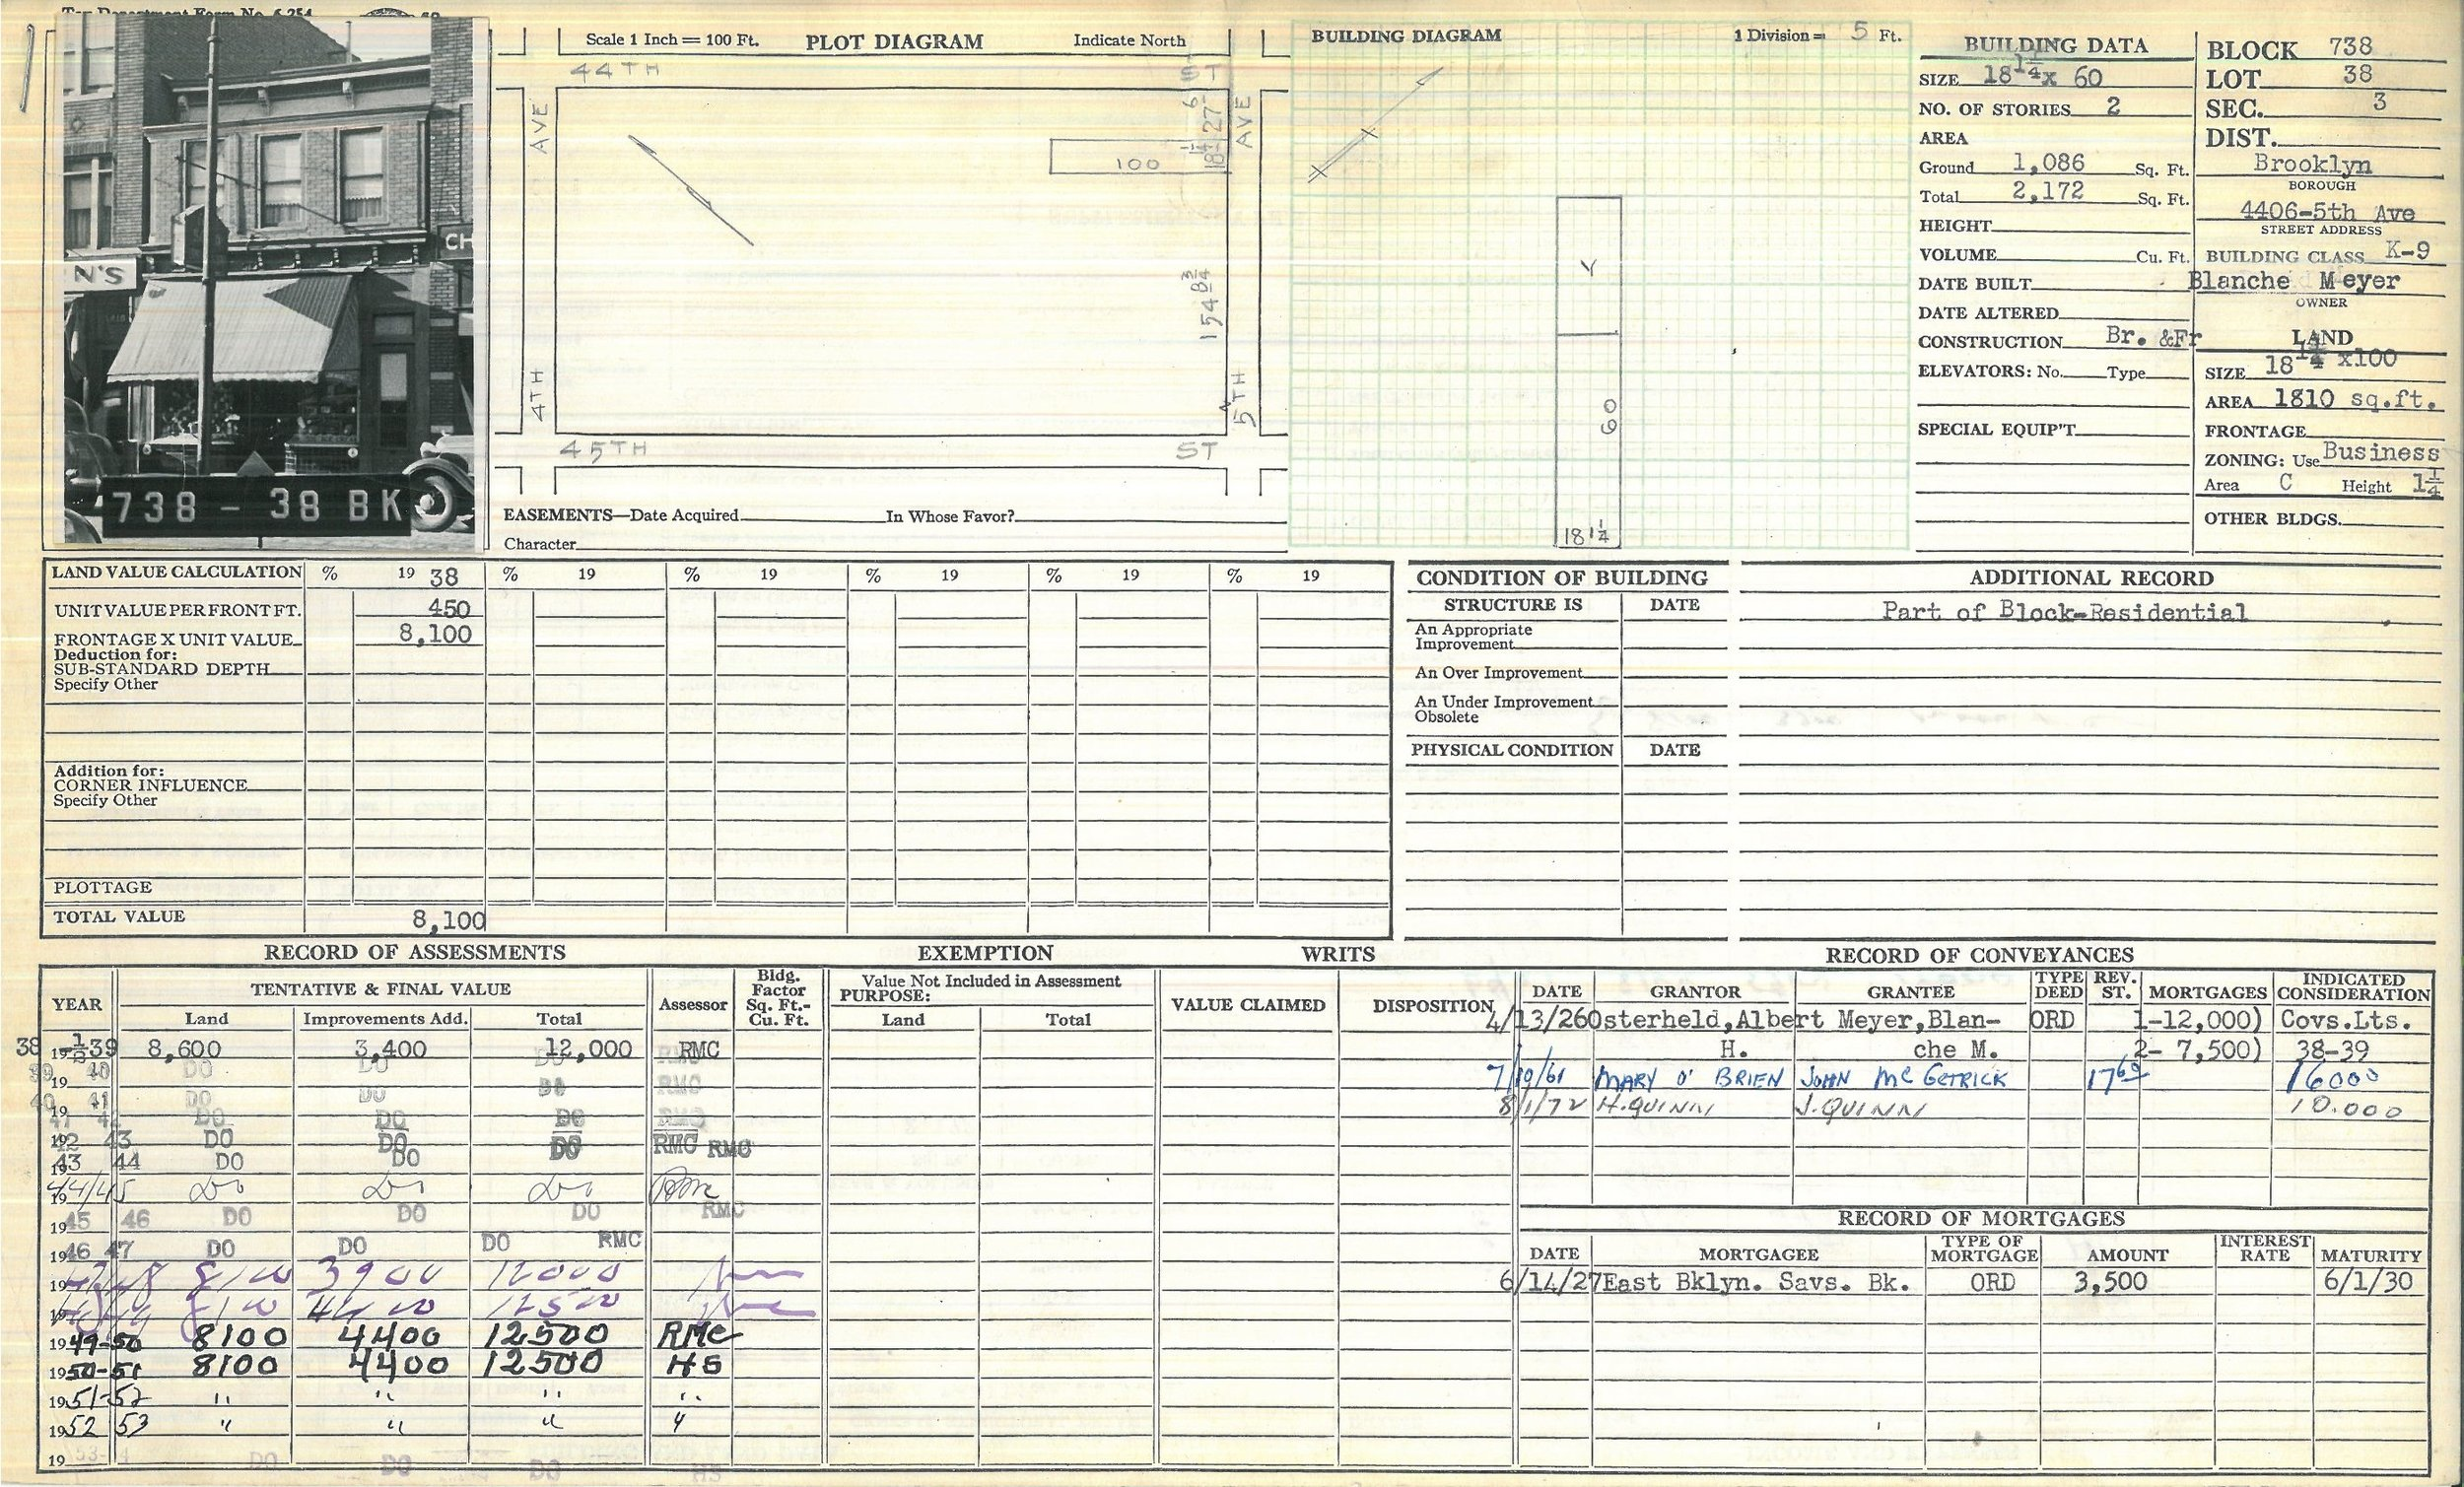 Tax form showing historical information about the building, NYC Municipal Archives.